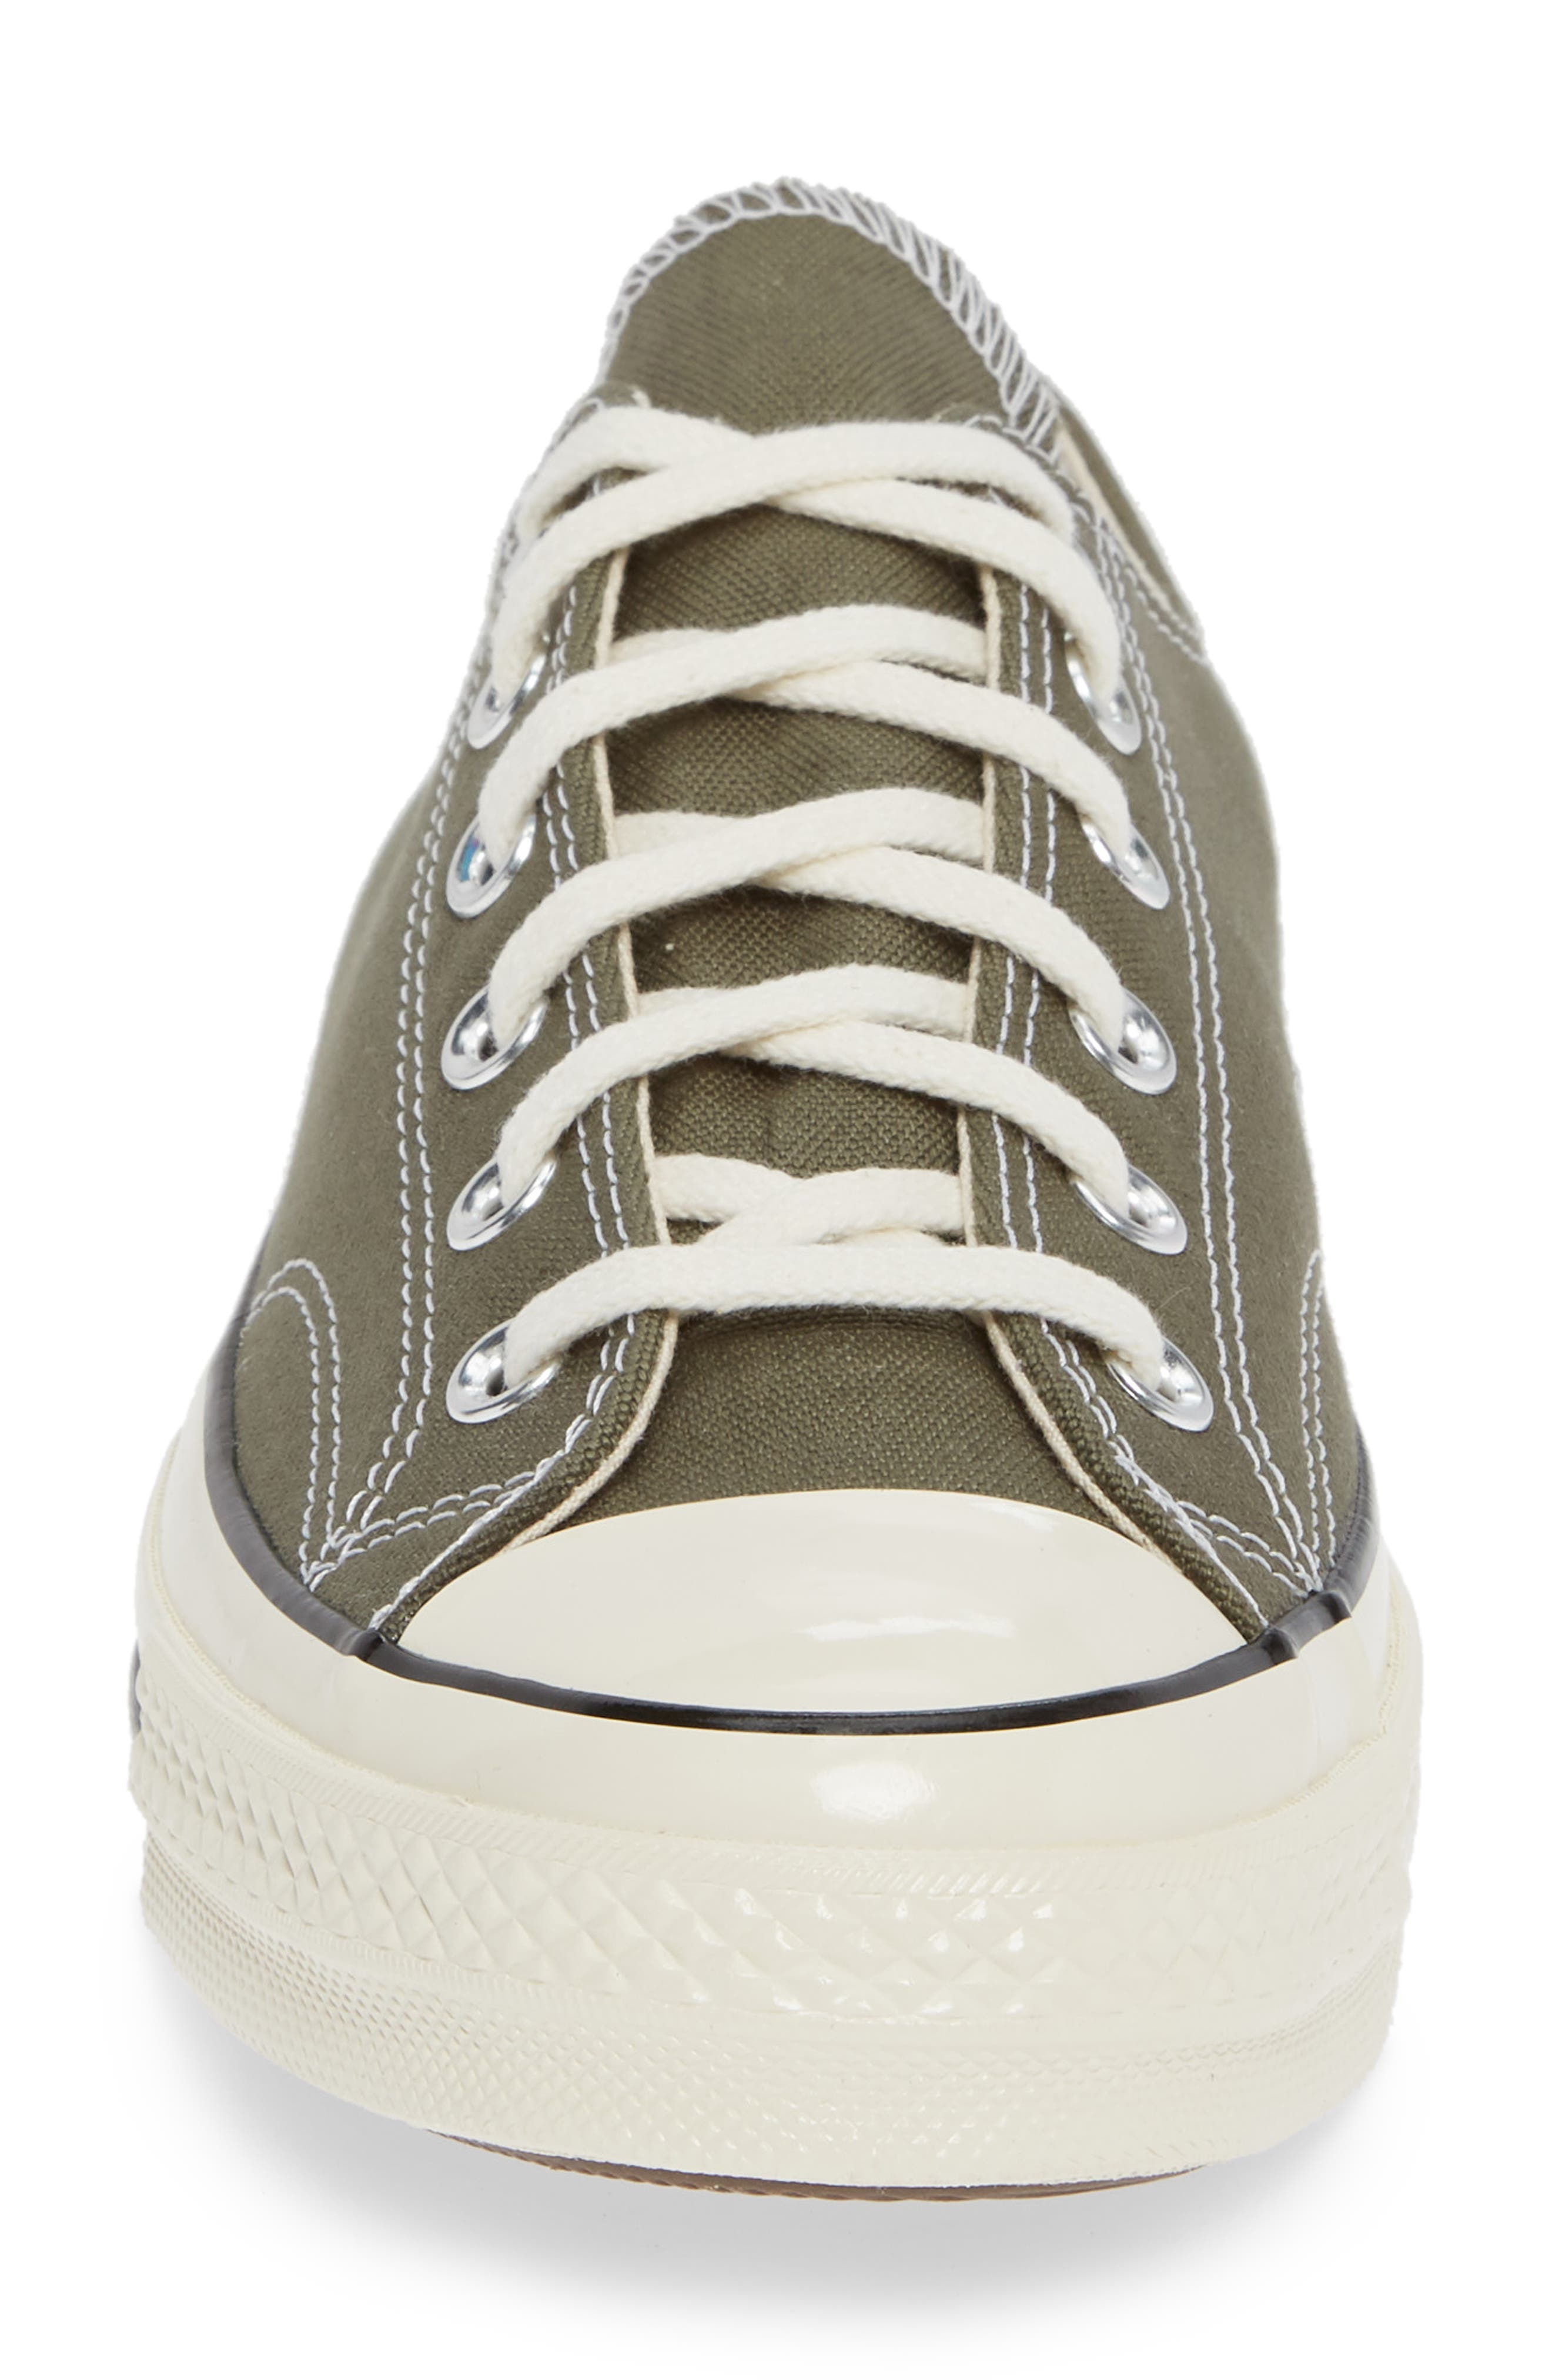 Chuck Taylor<sup>®</sup> All Star<sup>®</sup> '70 Low Sneaker,                             Alternate thumbnail 4, color,                             FIELD SURPLUS/ BLACK/ EGRET